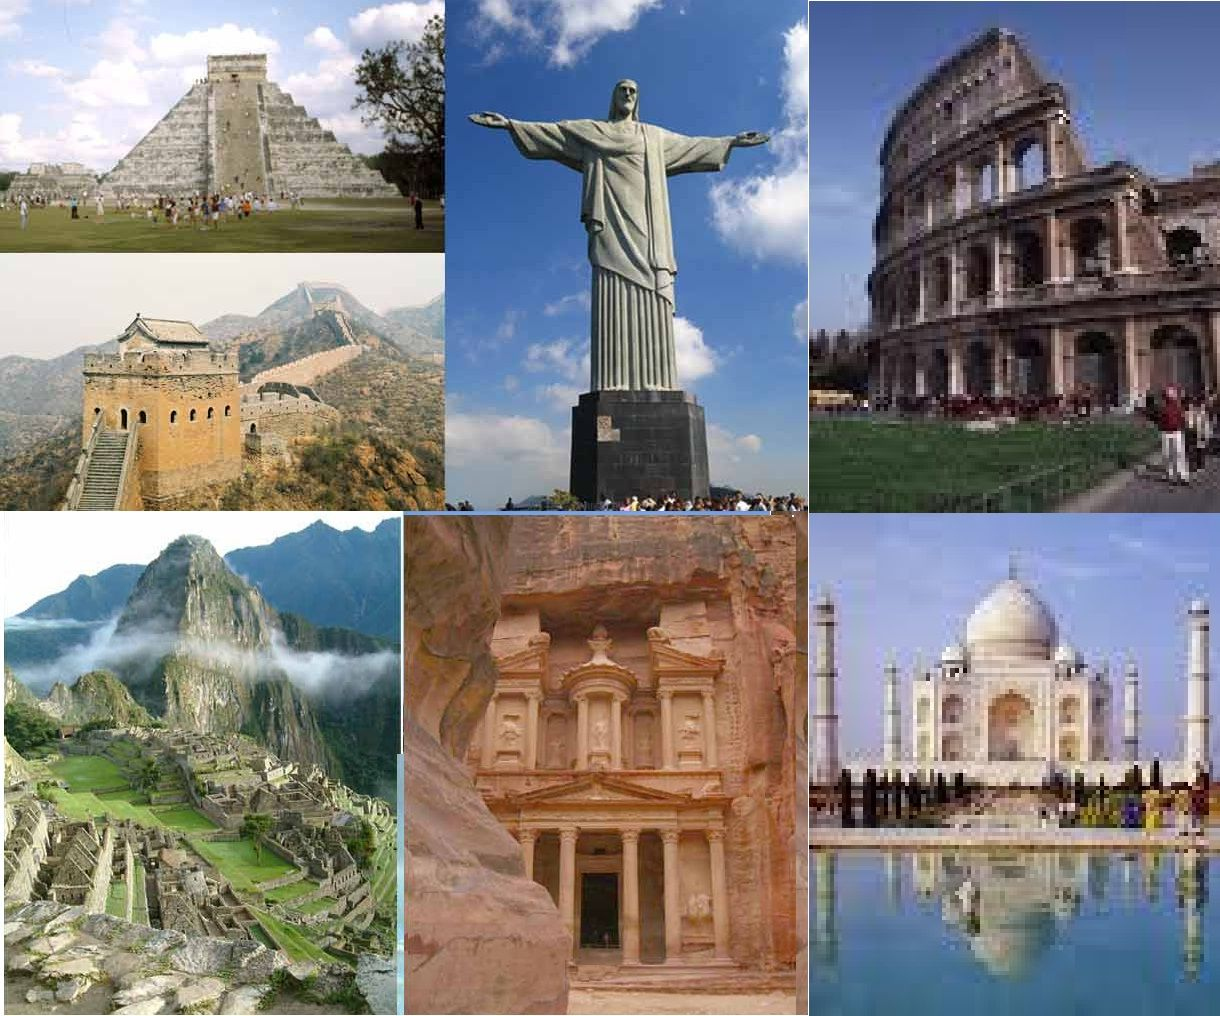 Modern 7 wonders of the world - Seven Wonders Of The World New Seven Wonders World Seven Wonders Of The World Pinterest World Wonders Of The World And The O Jays